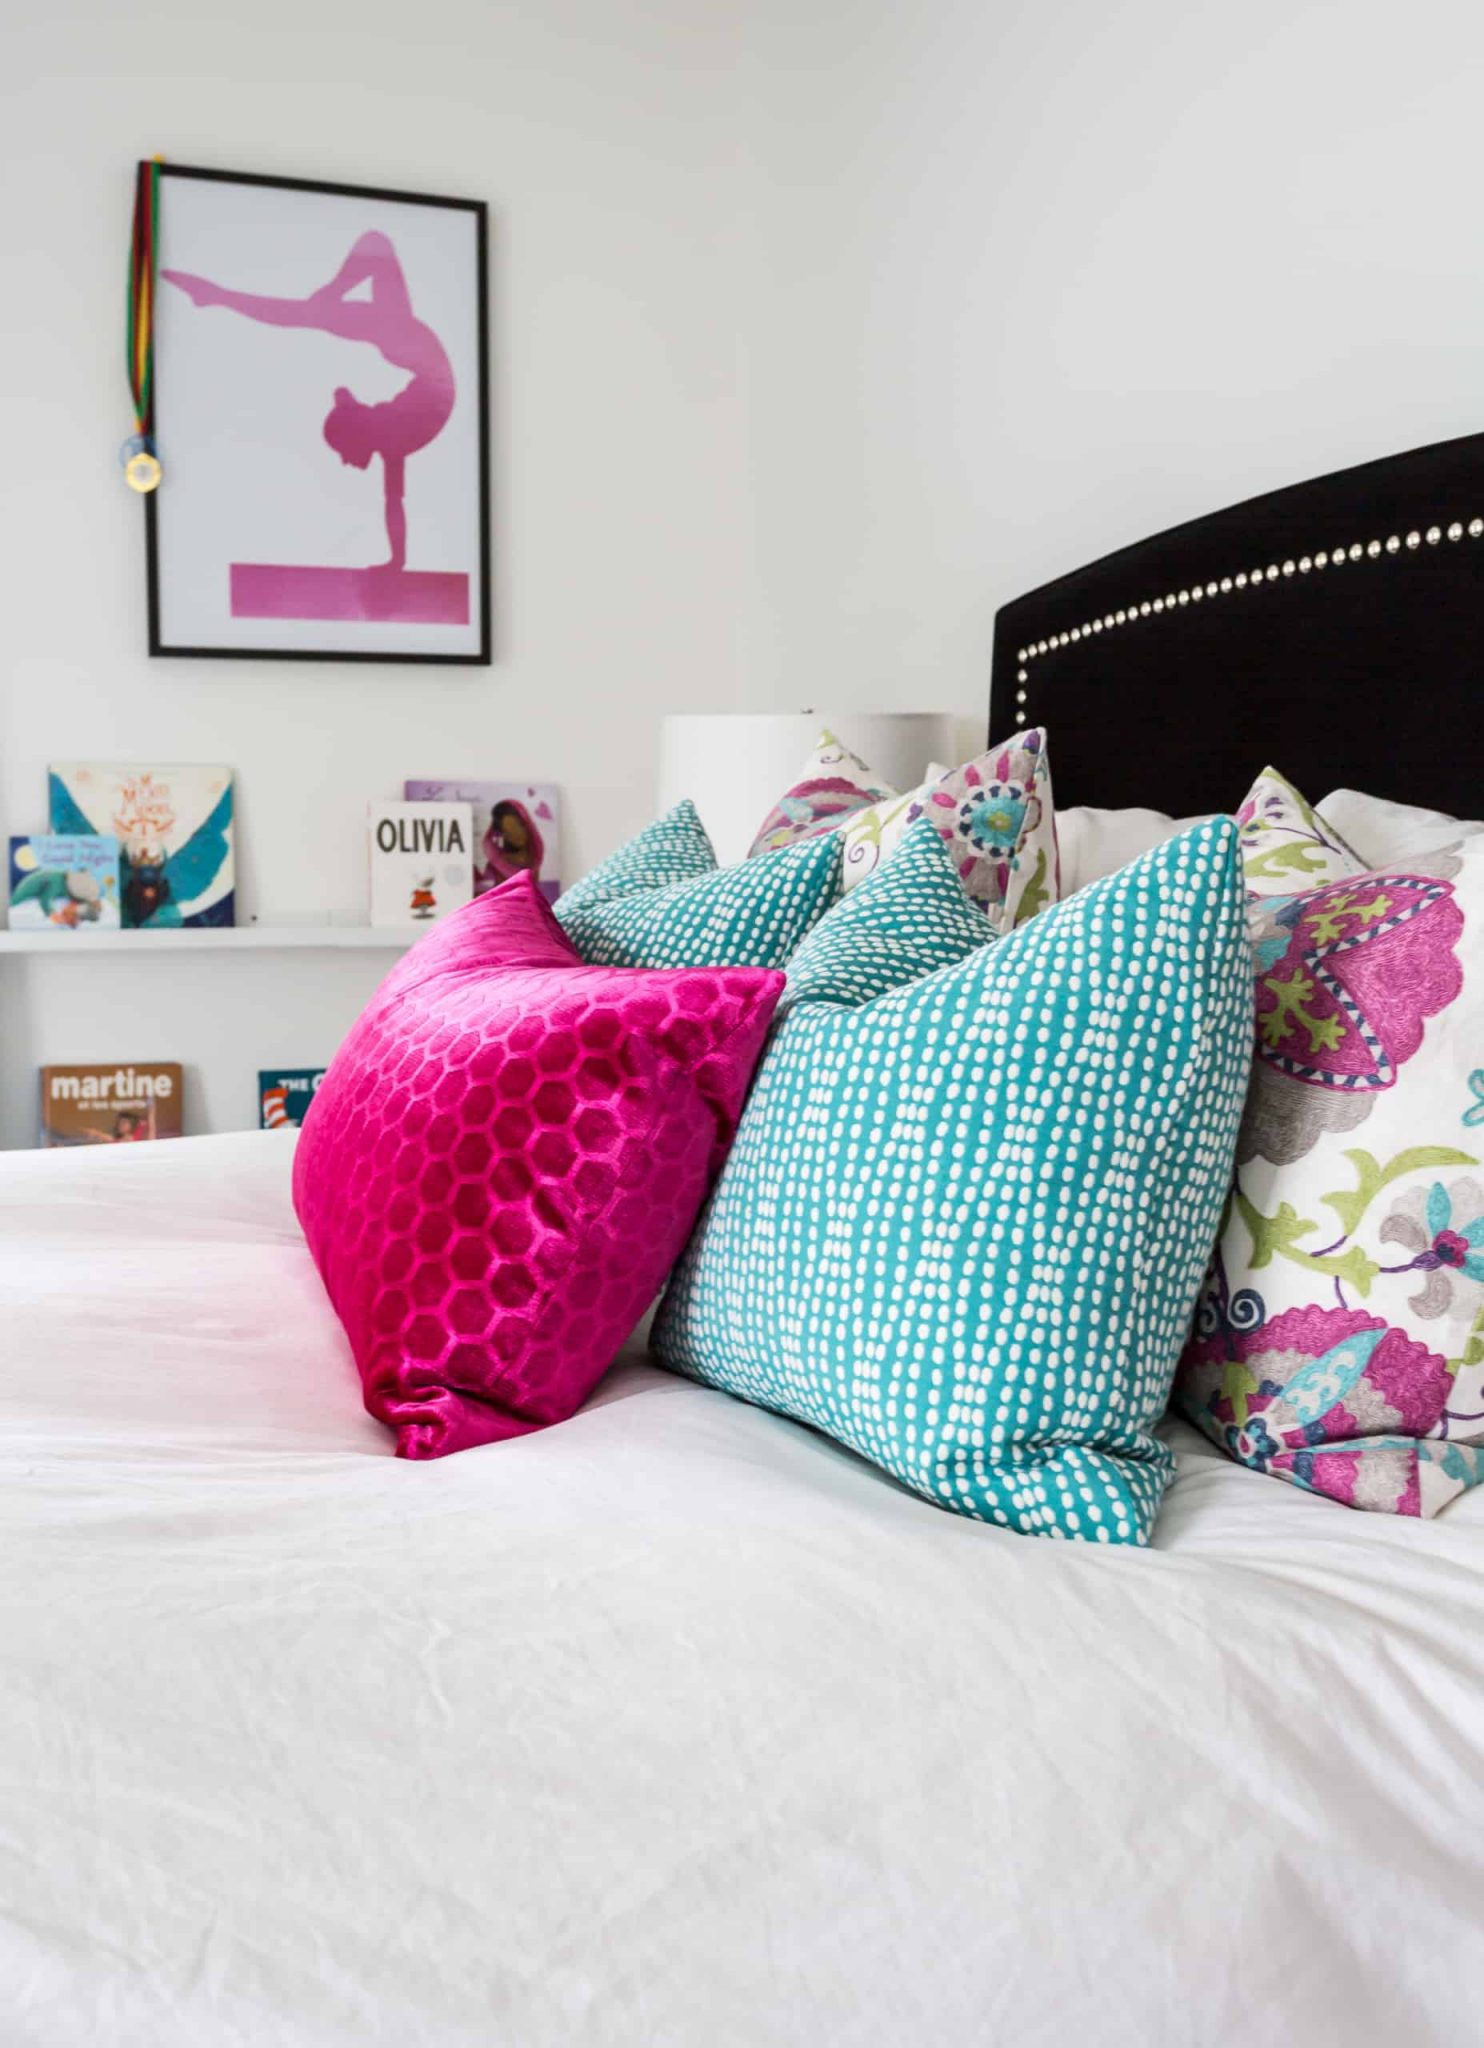 Array of different colored pillows on a white bed